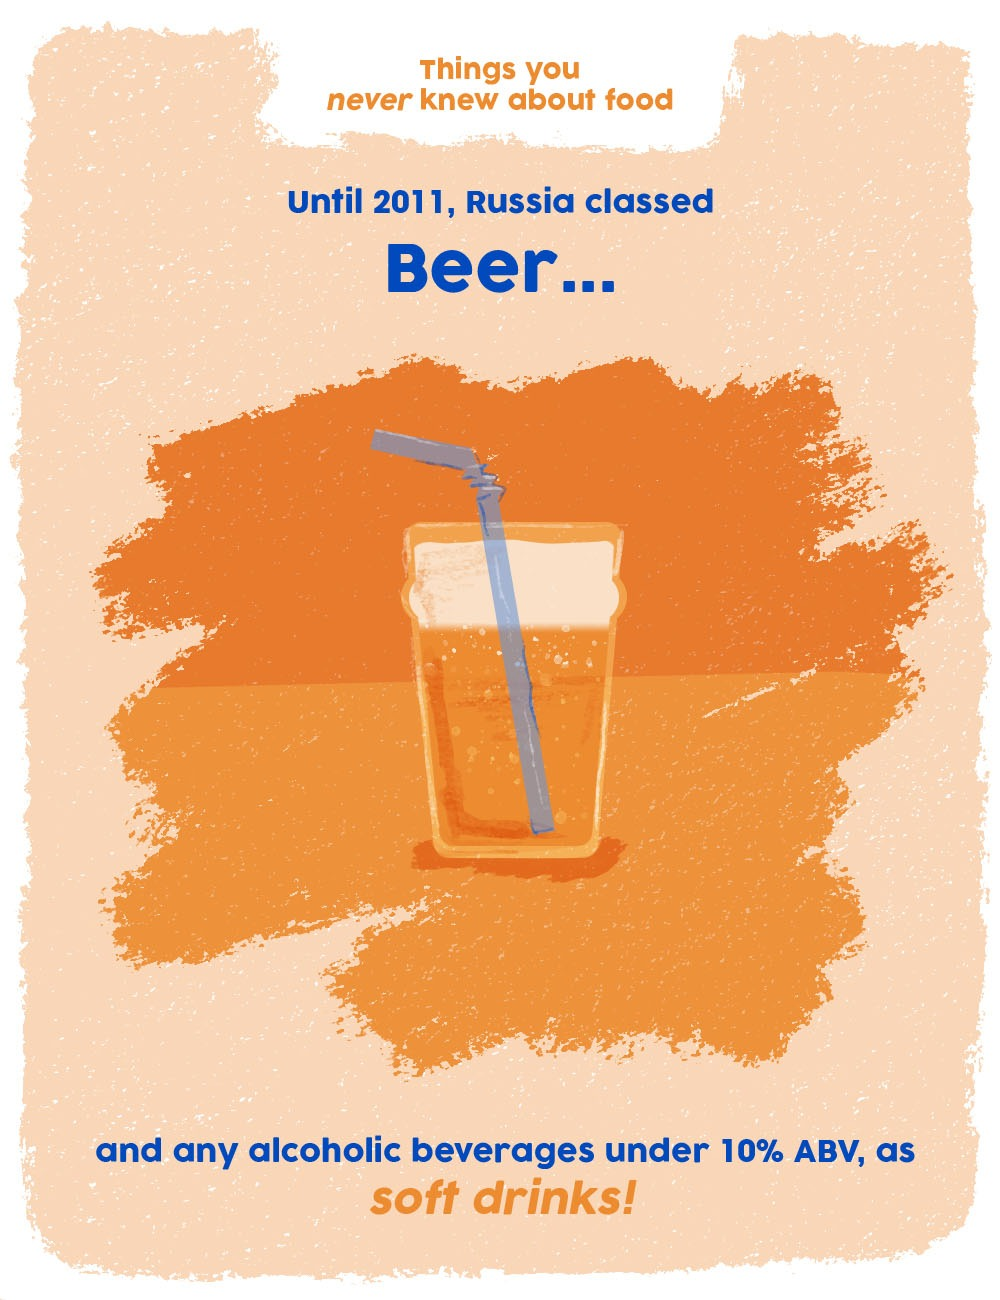 things you never knew about food graphics - beer facts